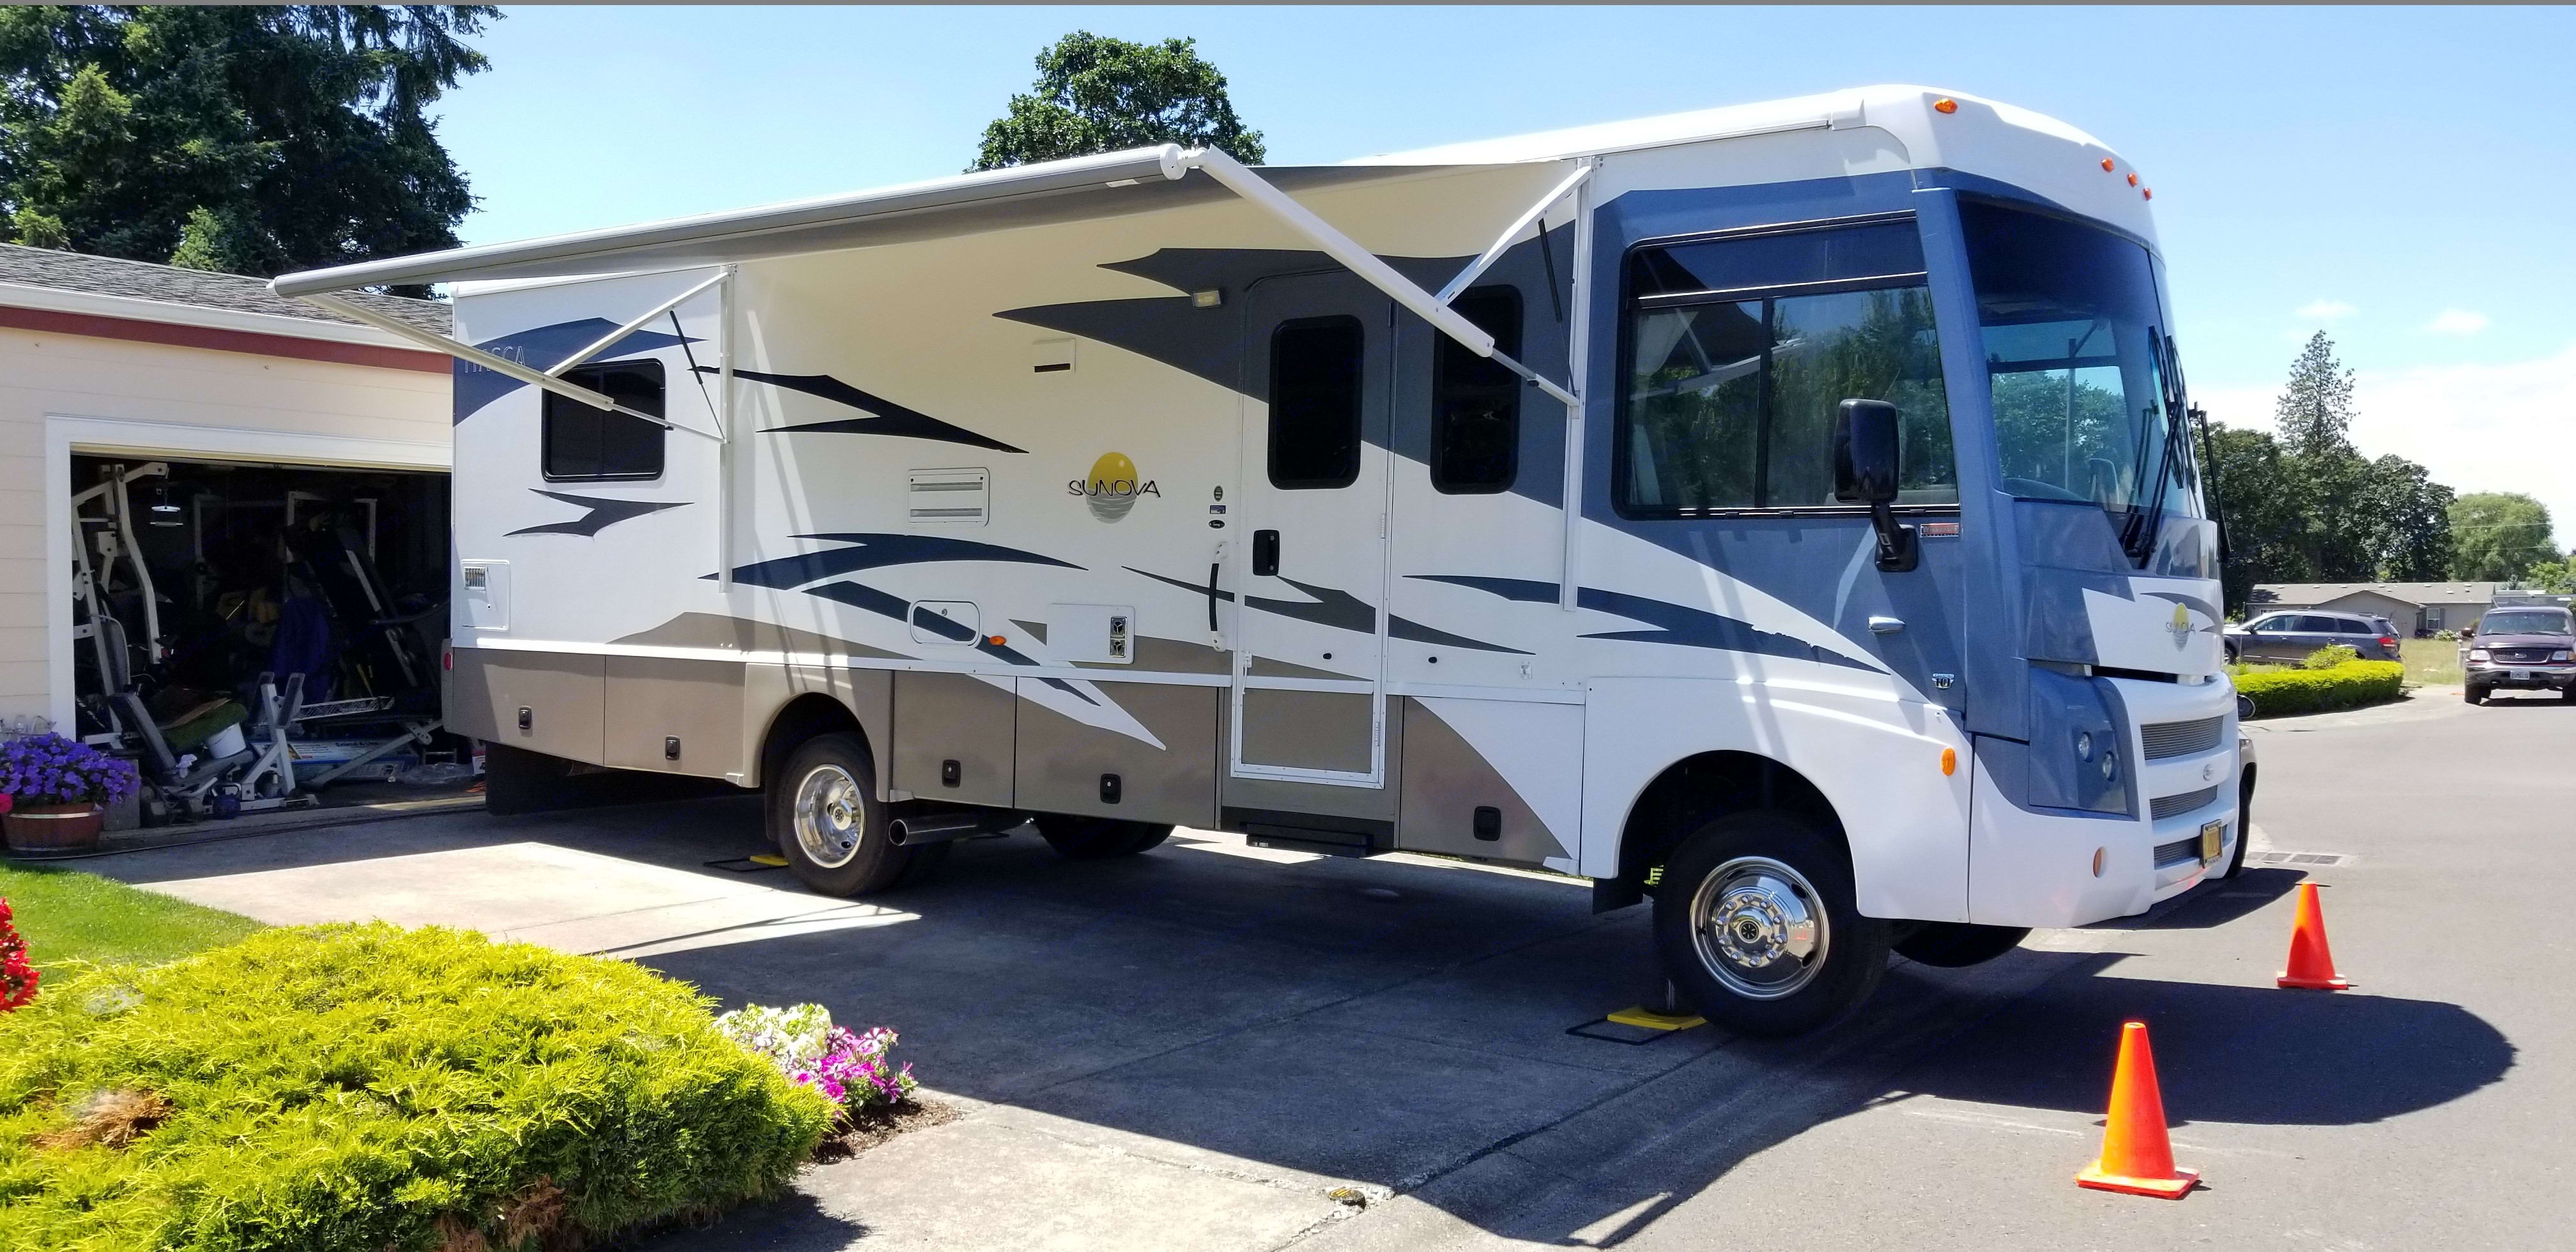 2008 ITASCA SUNOVA 30B, A very rare gem of an RV! Lightly used, meticulously maintained and stored with care. If you want to go camping in one of the most reliable motor homes on the market and look good doing it, this one if for you. It is equipped with sofa dinette, walk around bed, A/C, generator and a lot more.   Just got a brand new electric awning! Press of the button and you have shade! . Itasca Sunova 2008